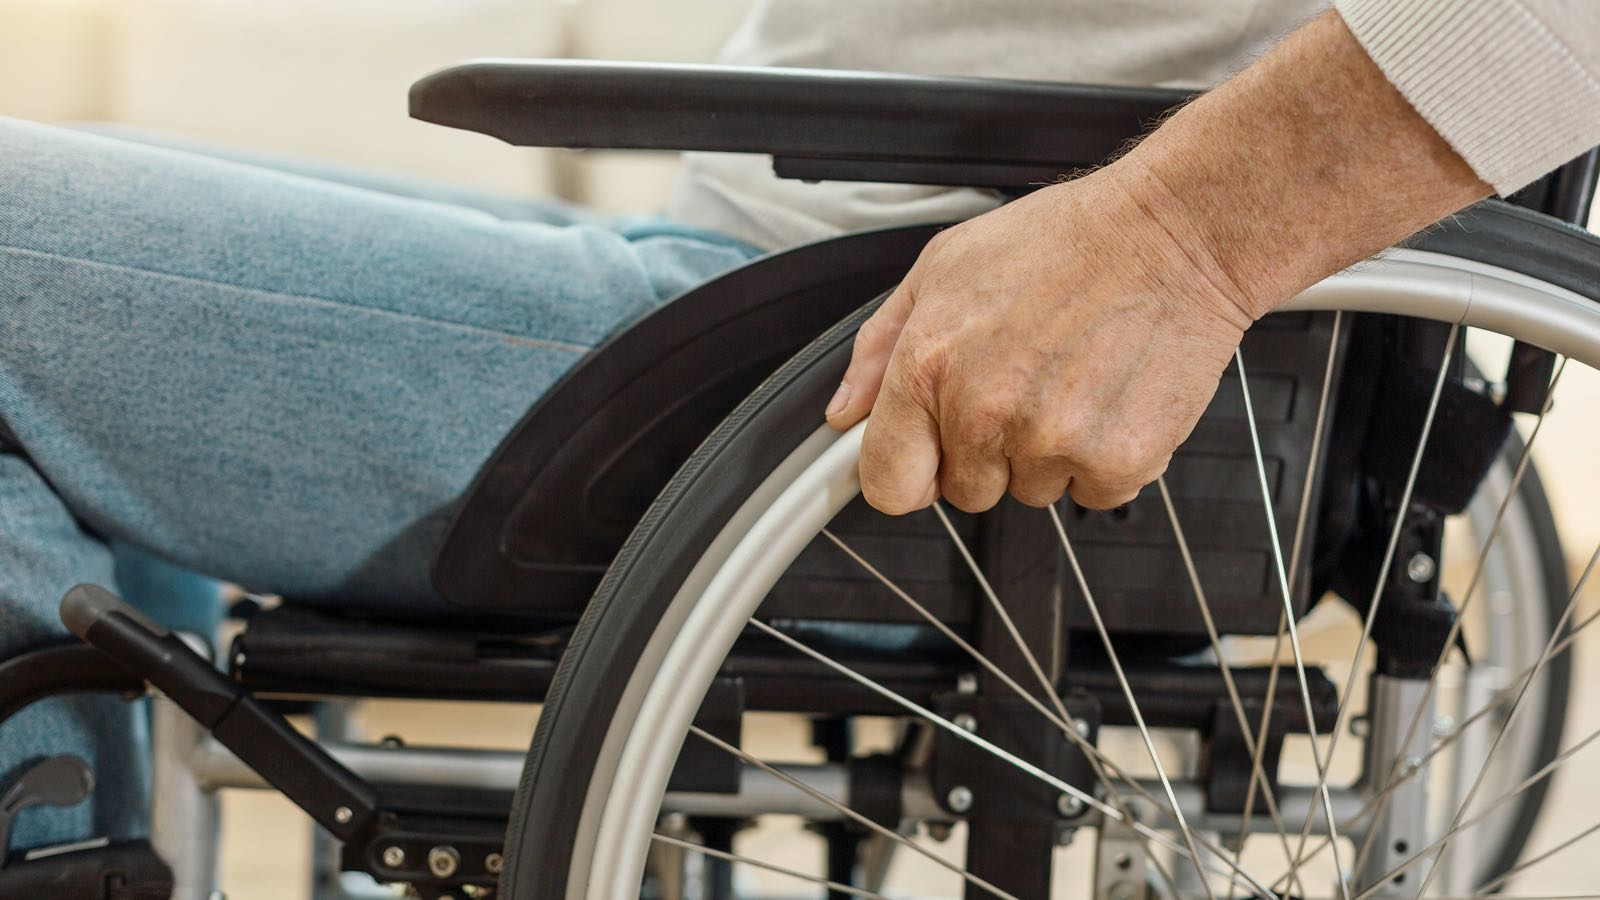 Introduction to Wheelchair Service Provision - Developing knowledge and effectiveness in wheelchair service provision.